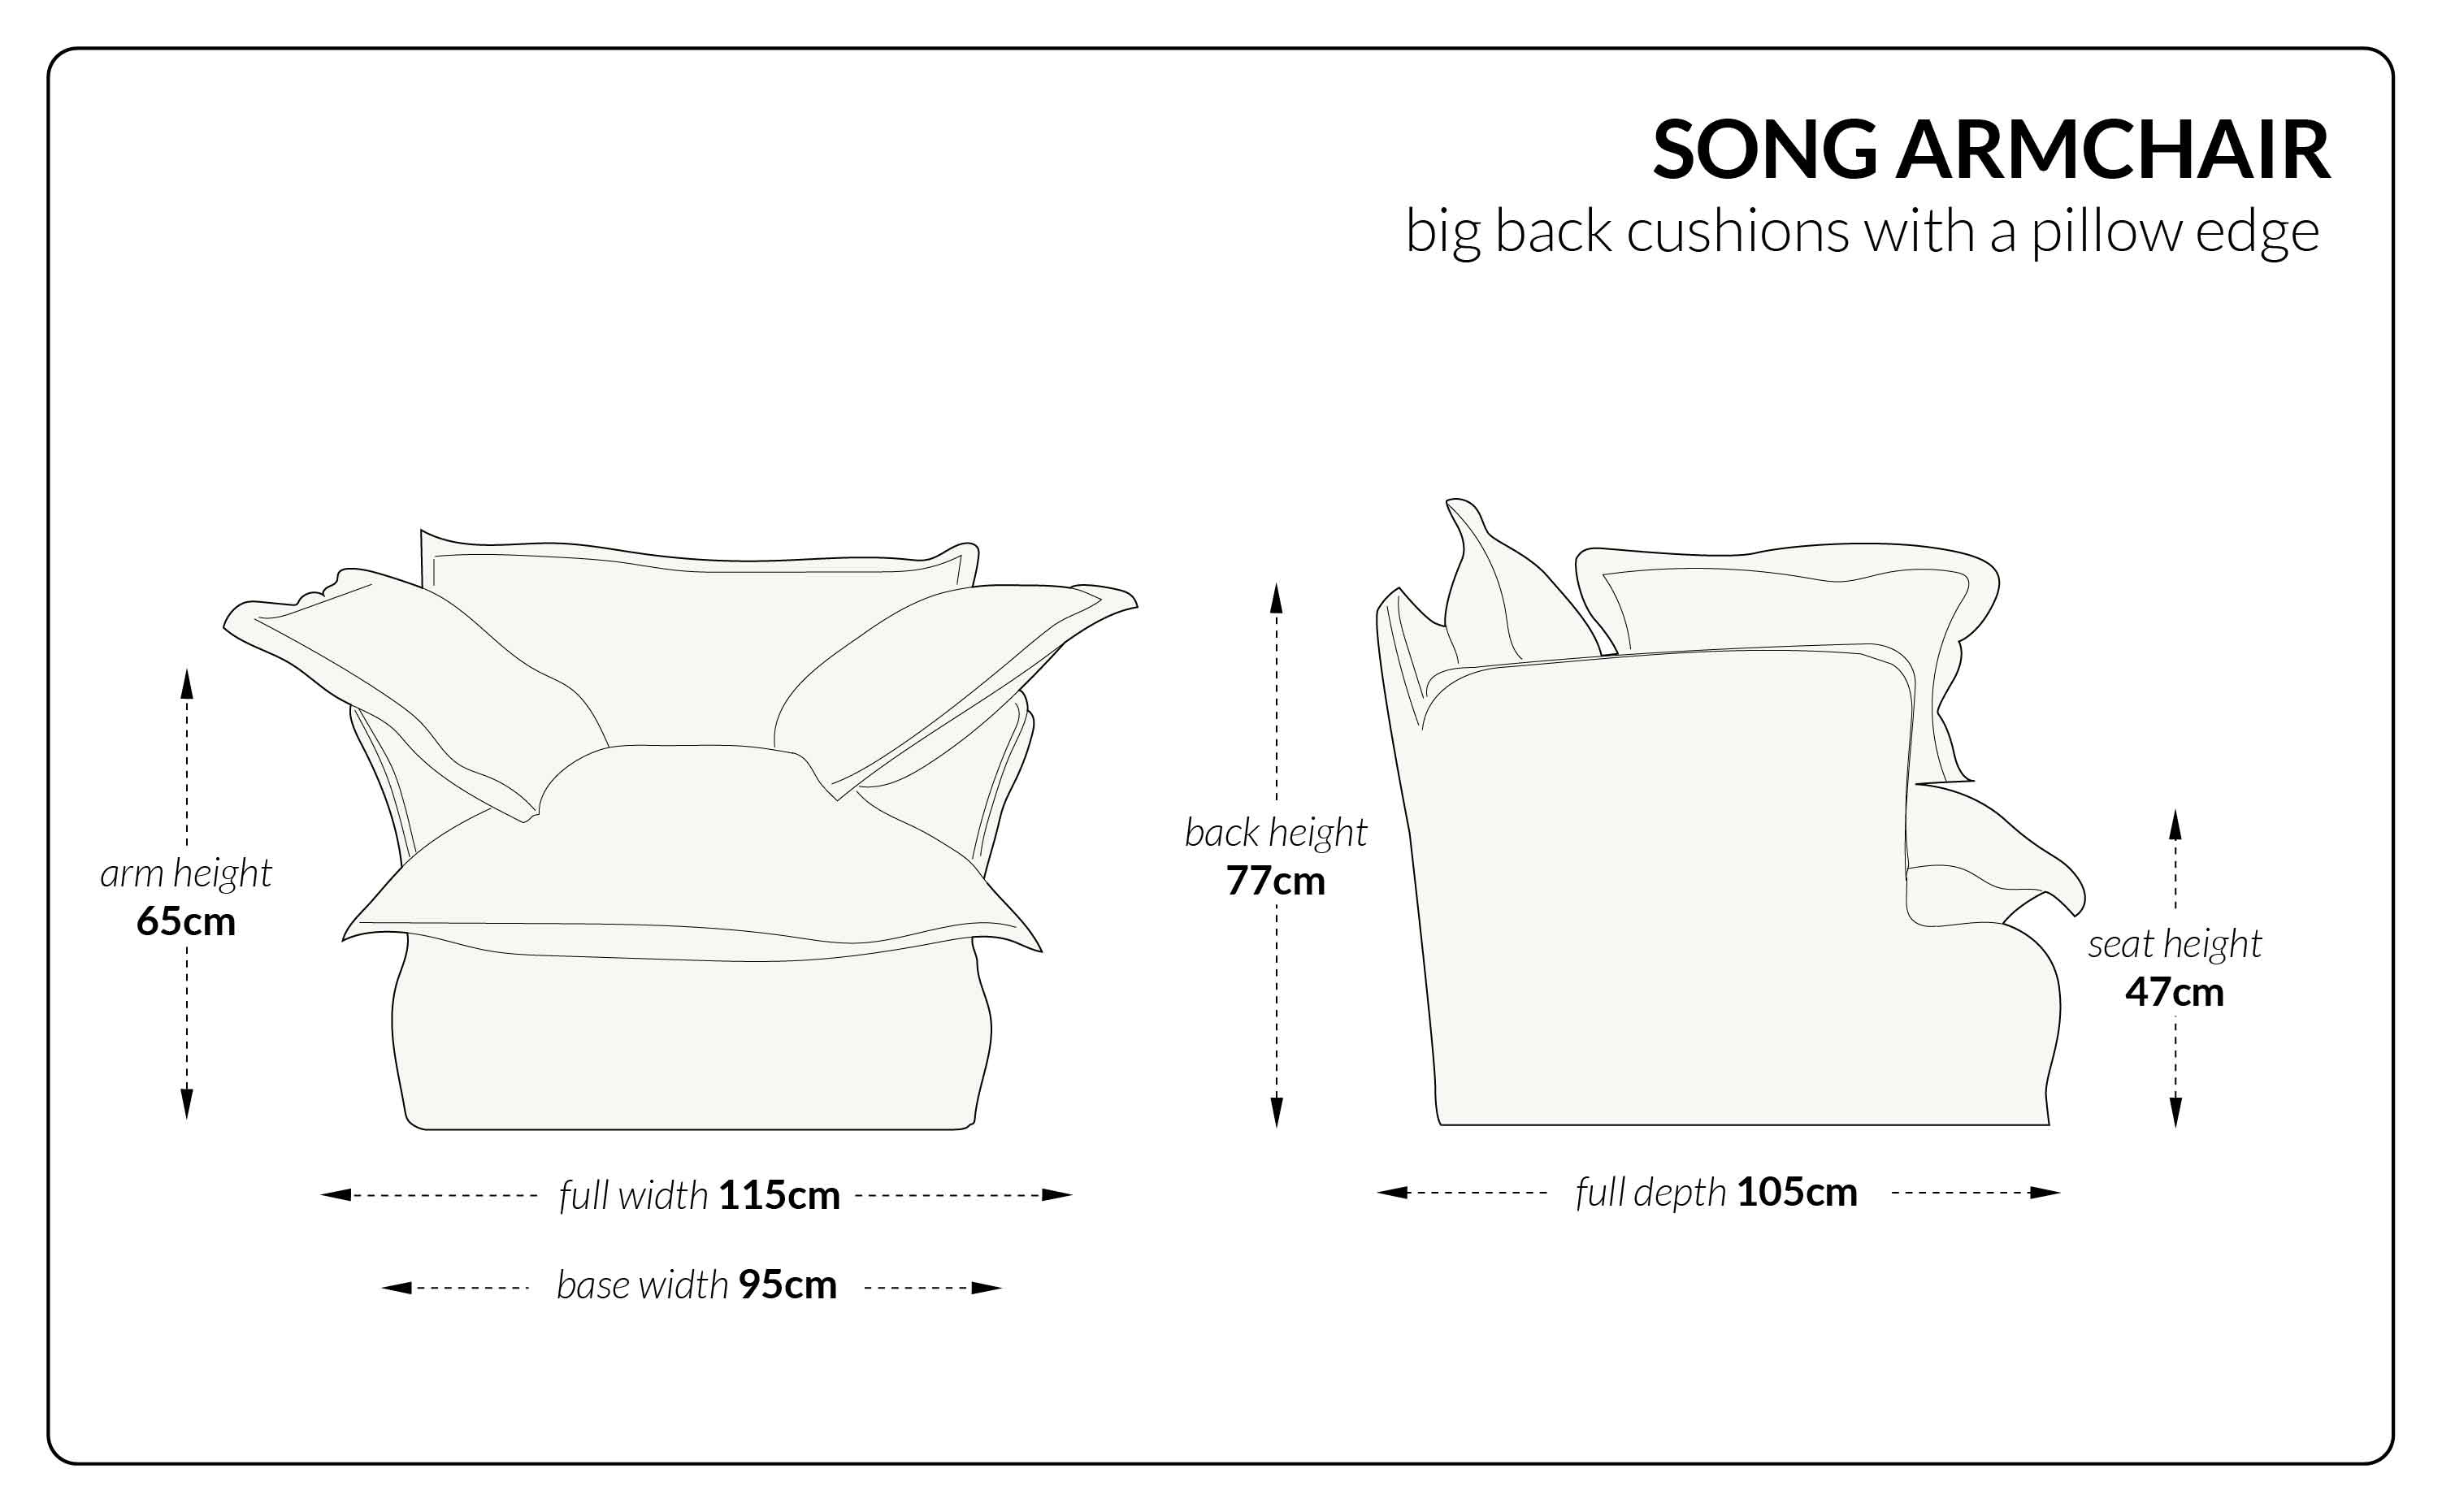 Song Armchair big